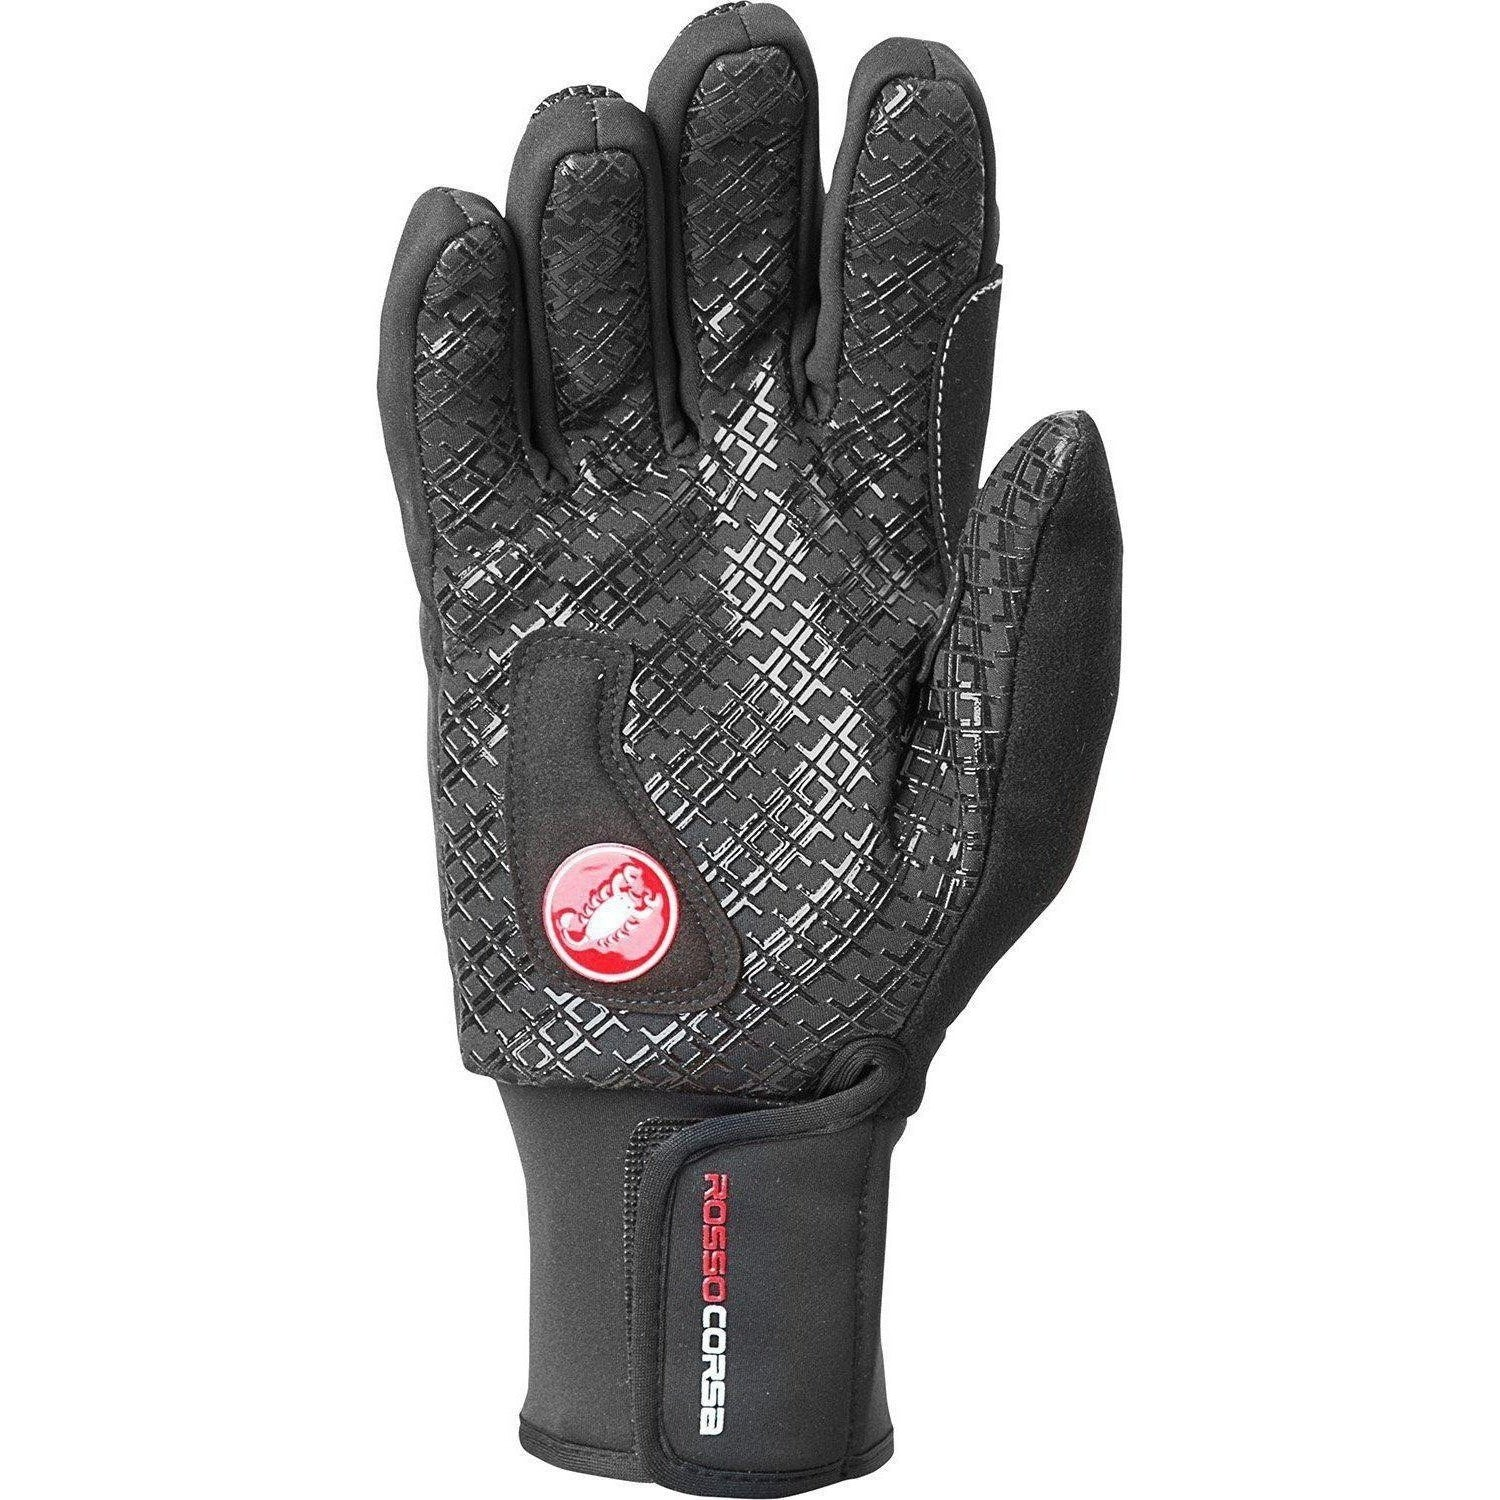 Castelli-Castelli Estremo Winter Gloves--saddleback-elite-performance-cycling